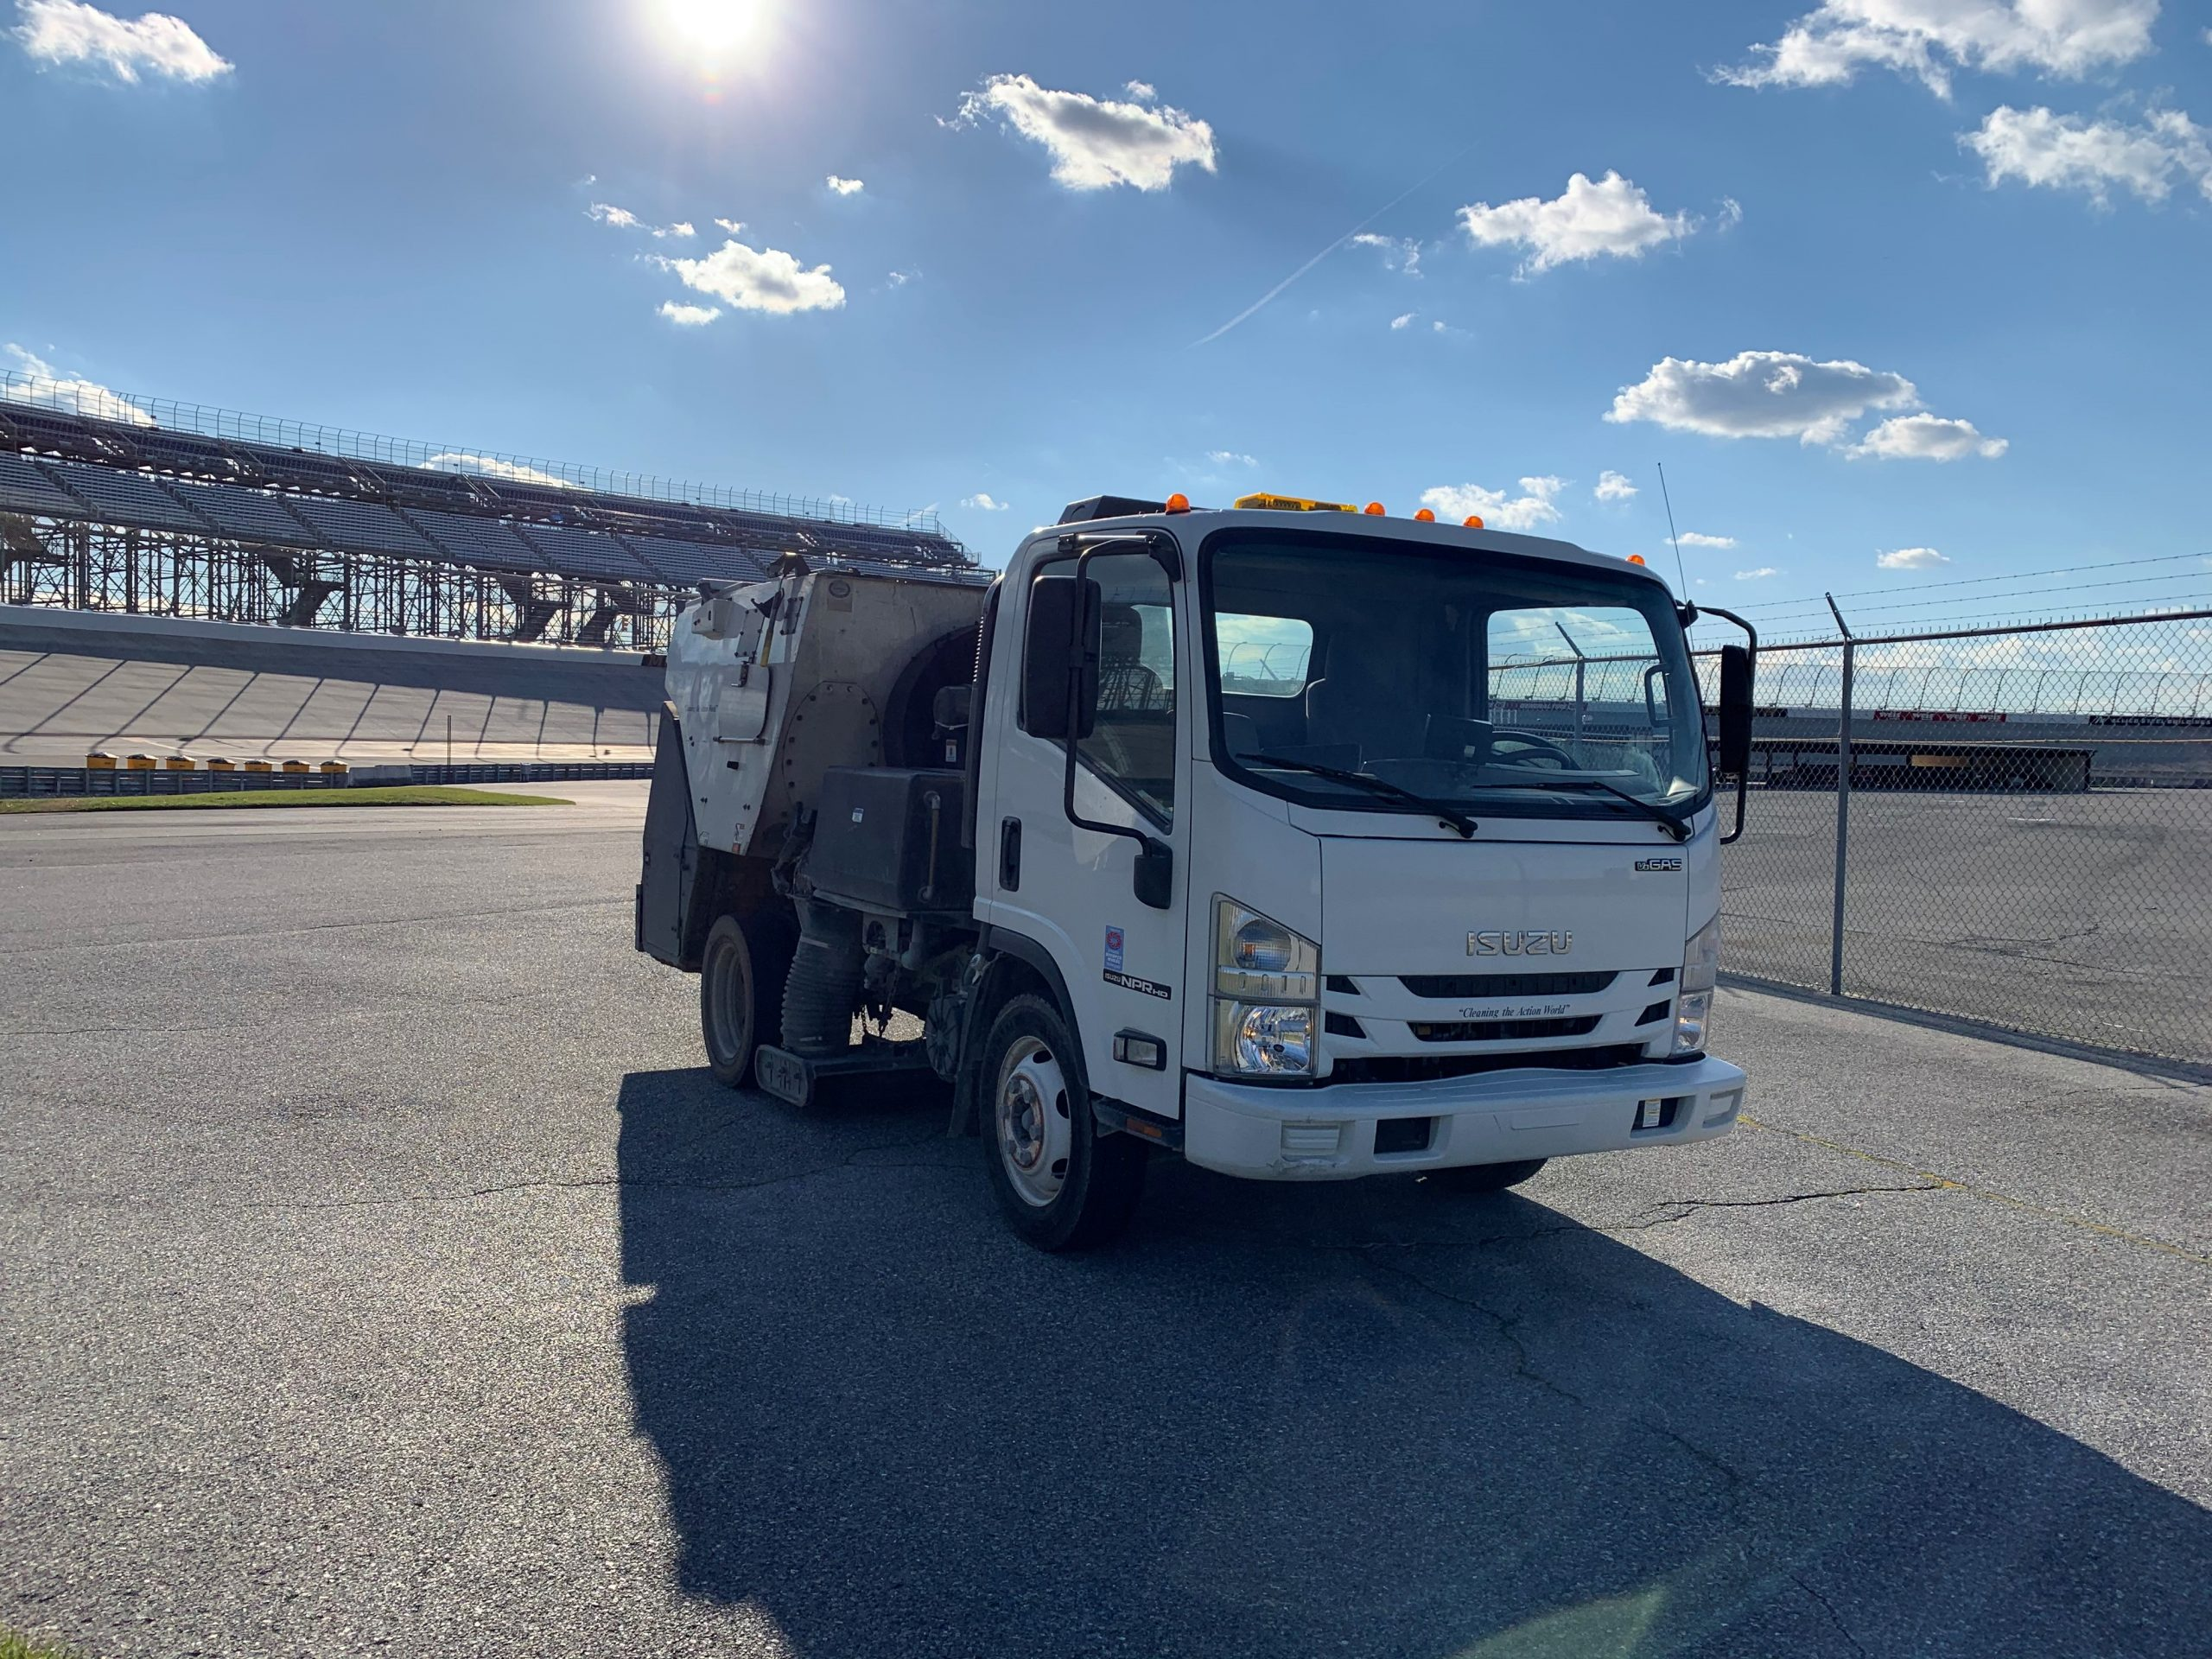 image of street sweeper truck